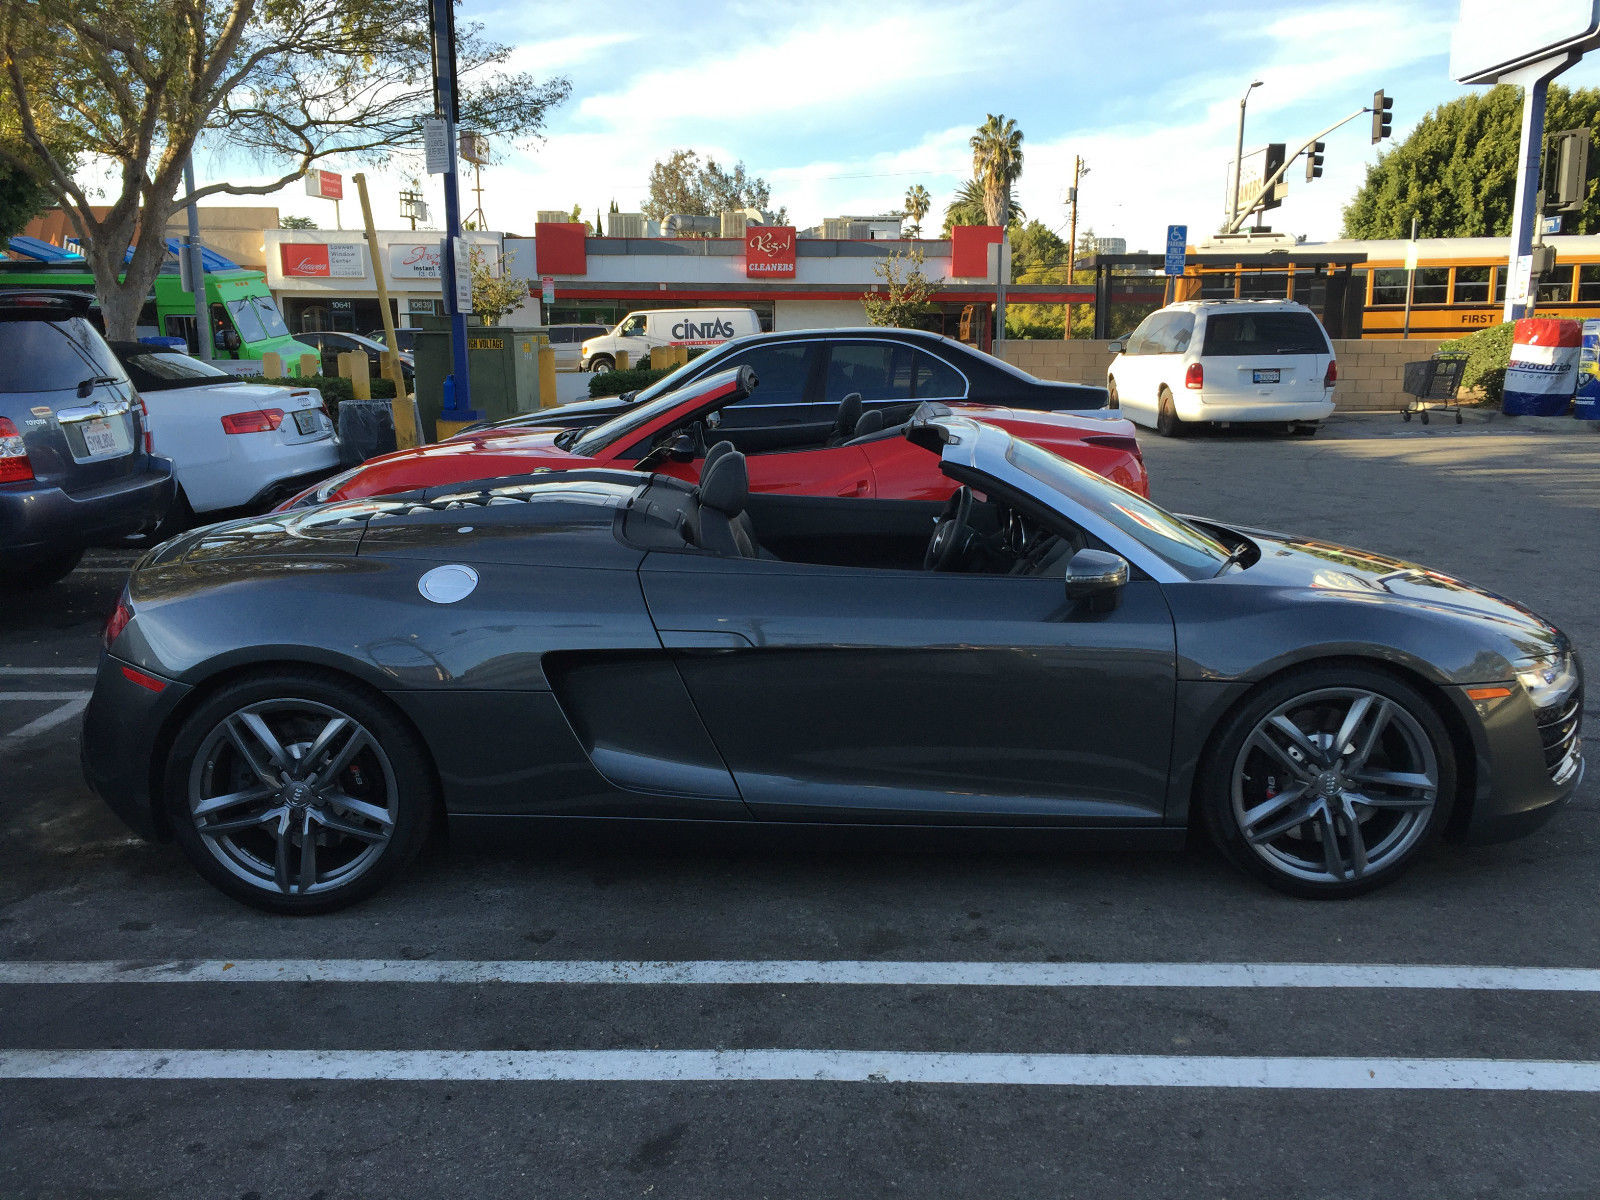 2015 audi r8 spyder convertible 2 door 4 2l for sale. Black Bedroom Furniture Sets. Home Design Ideas